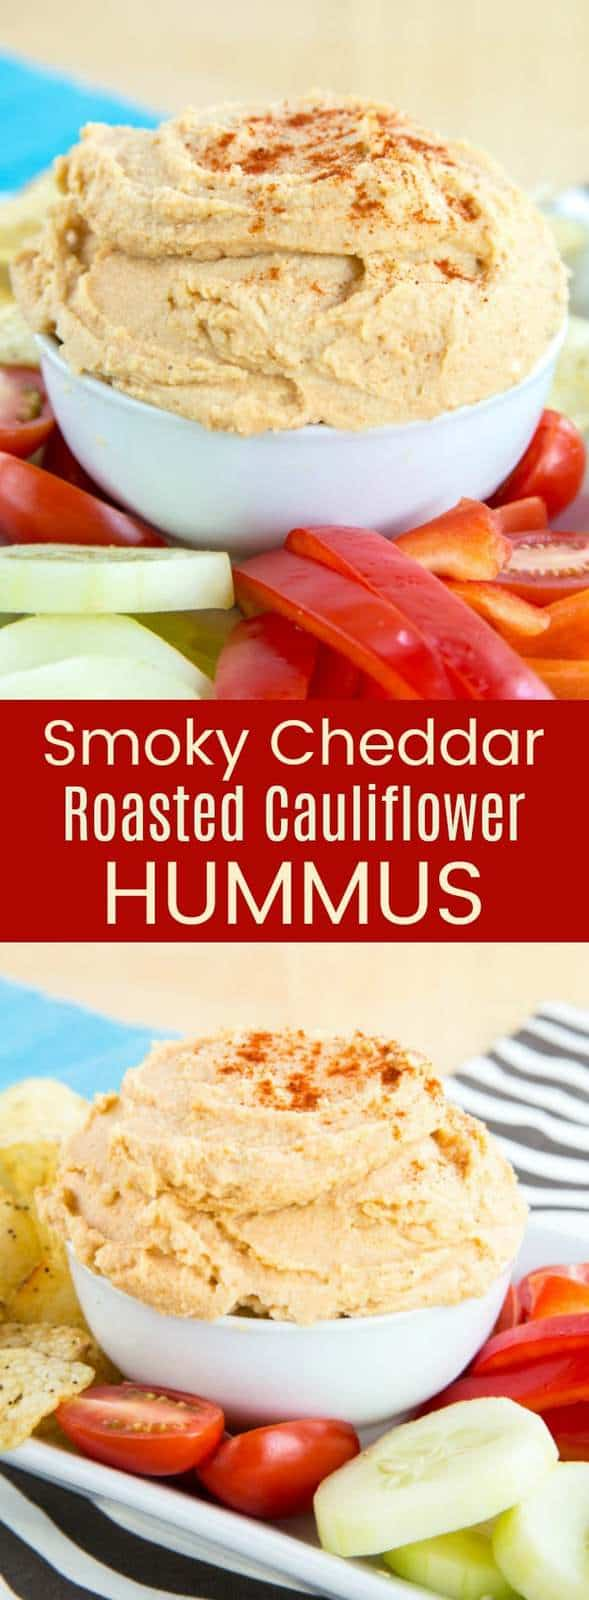 Smoky Cheddar Roasted Cauliflower Hummus recipe is a smooth and creamy healthy dip with hidden veggies, plus the cheesy flavor kids love. Serve with vegetables, chips, or pita for an appetizer or snack that's gluten free and vegetarian recipe. #hummus #glutenfree #cauliflower